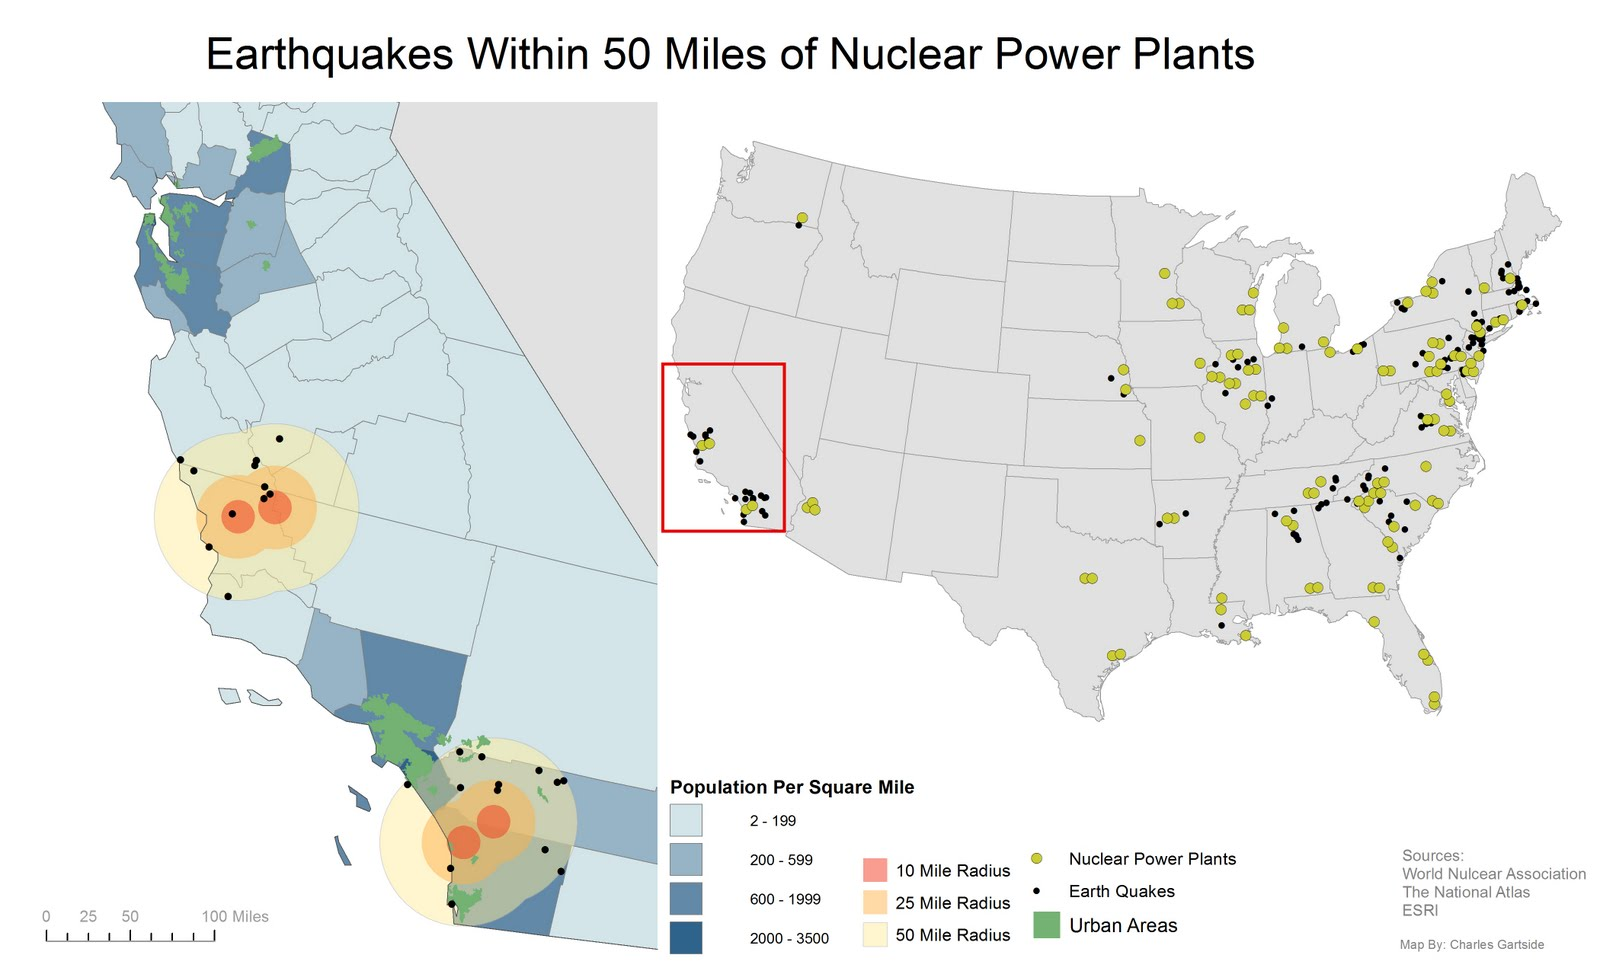 Nuclear Reactors In The Us Nuclear Reactors Sites And More USA - Map nuclear power plants in us